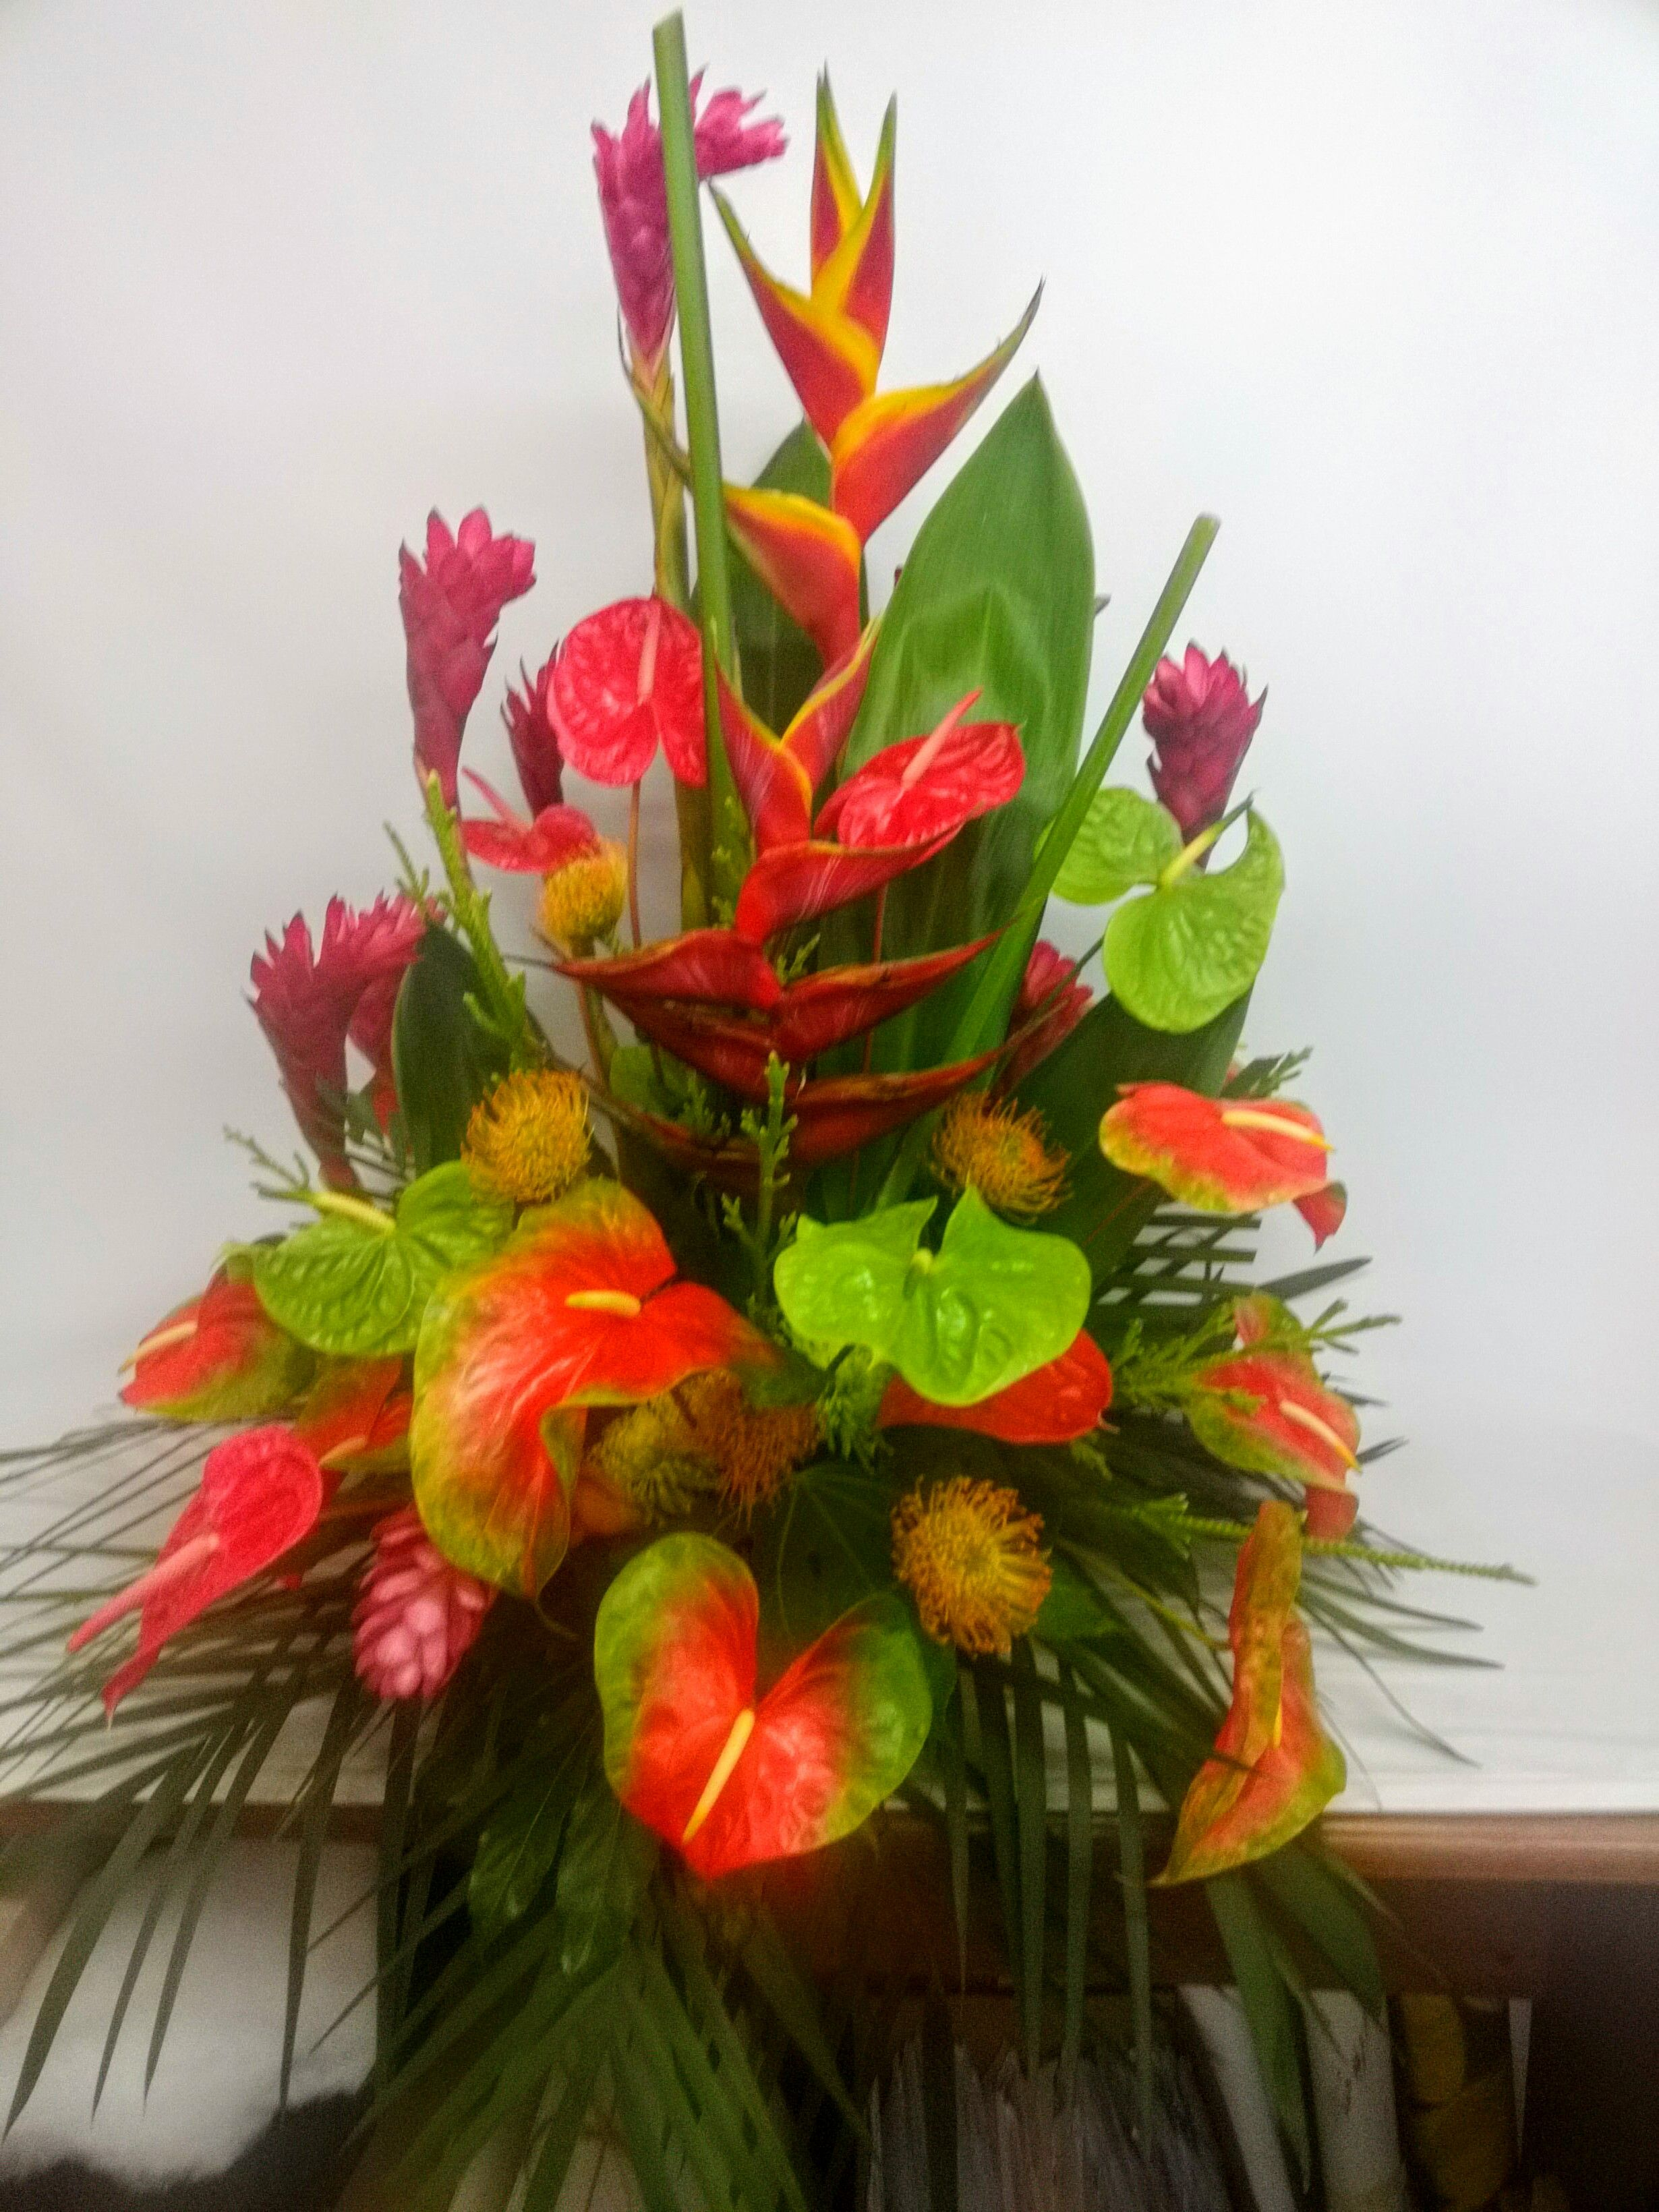 Tropical flowers make a gorgeous bouquet! | Flower bouquets for all ...